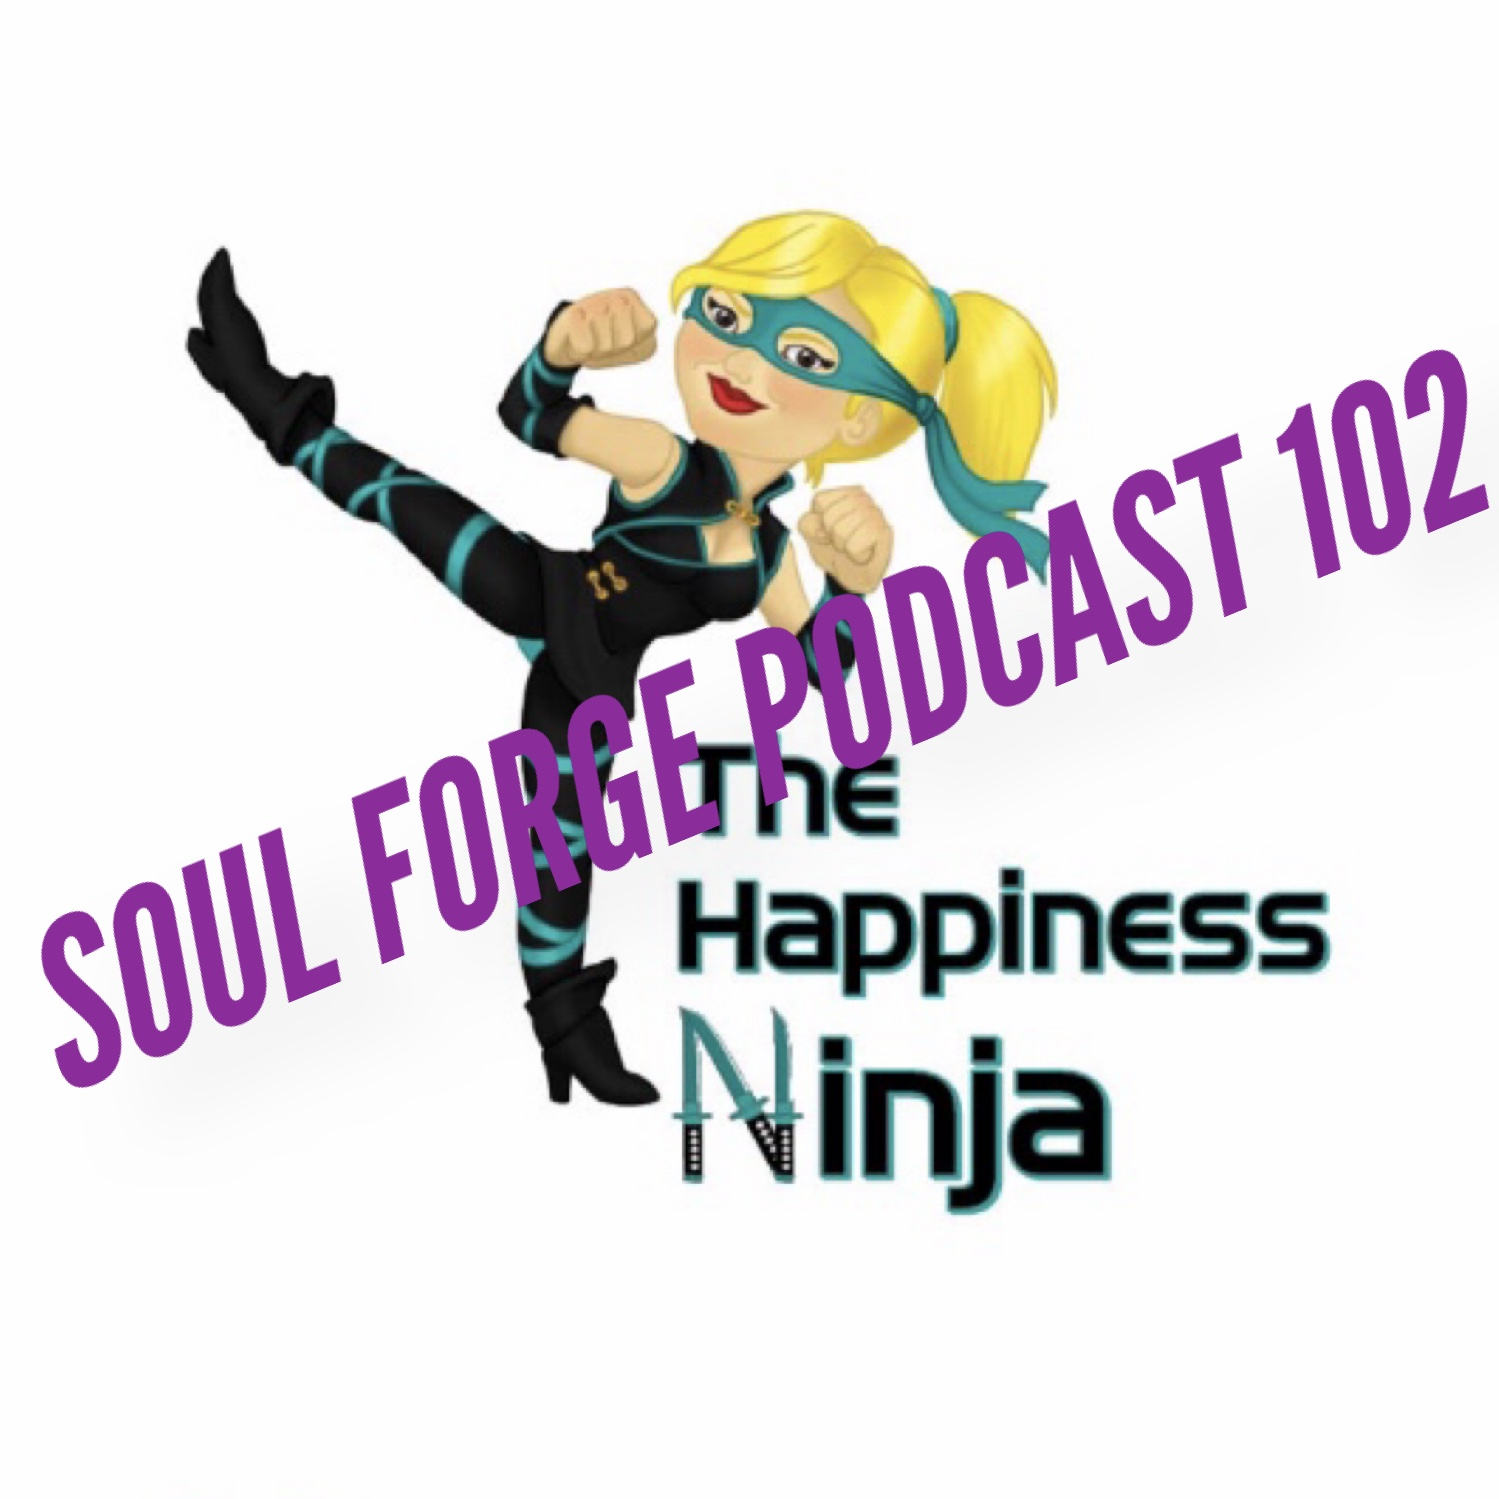 The Happiness Ninja - 102